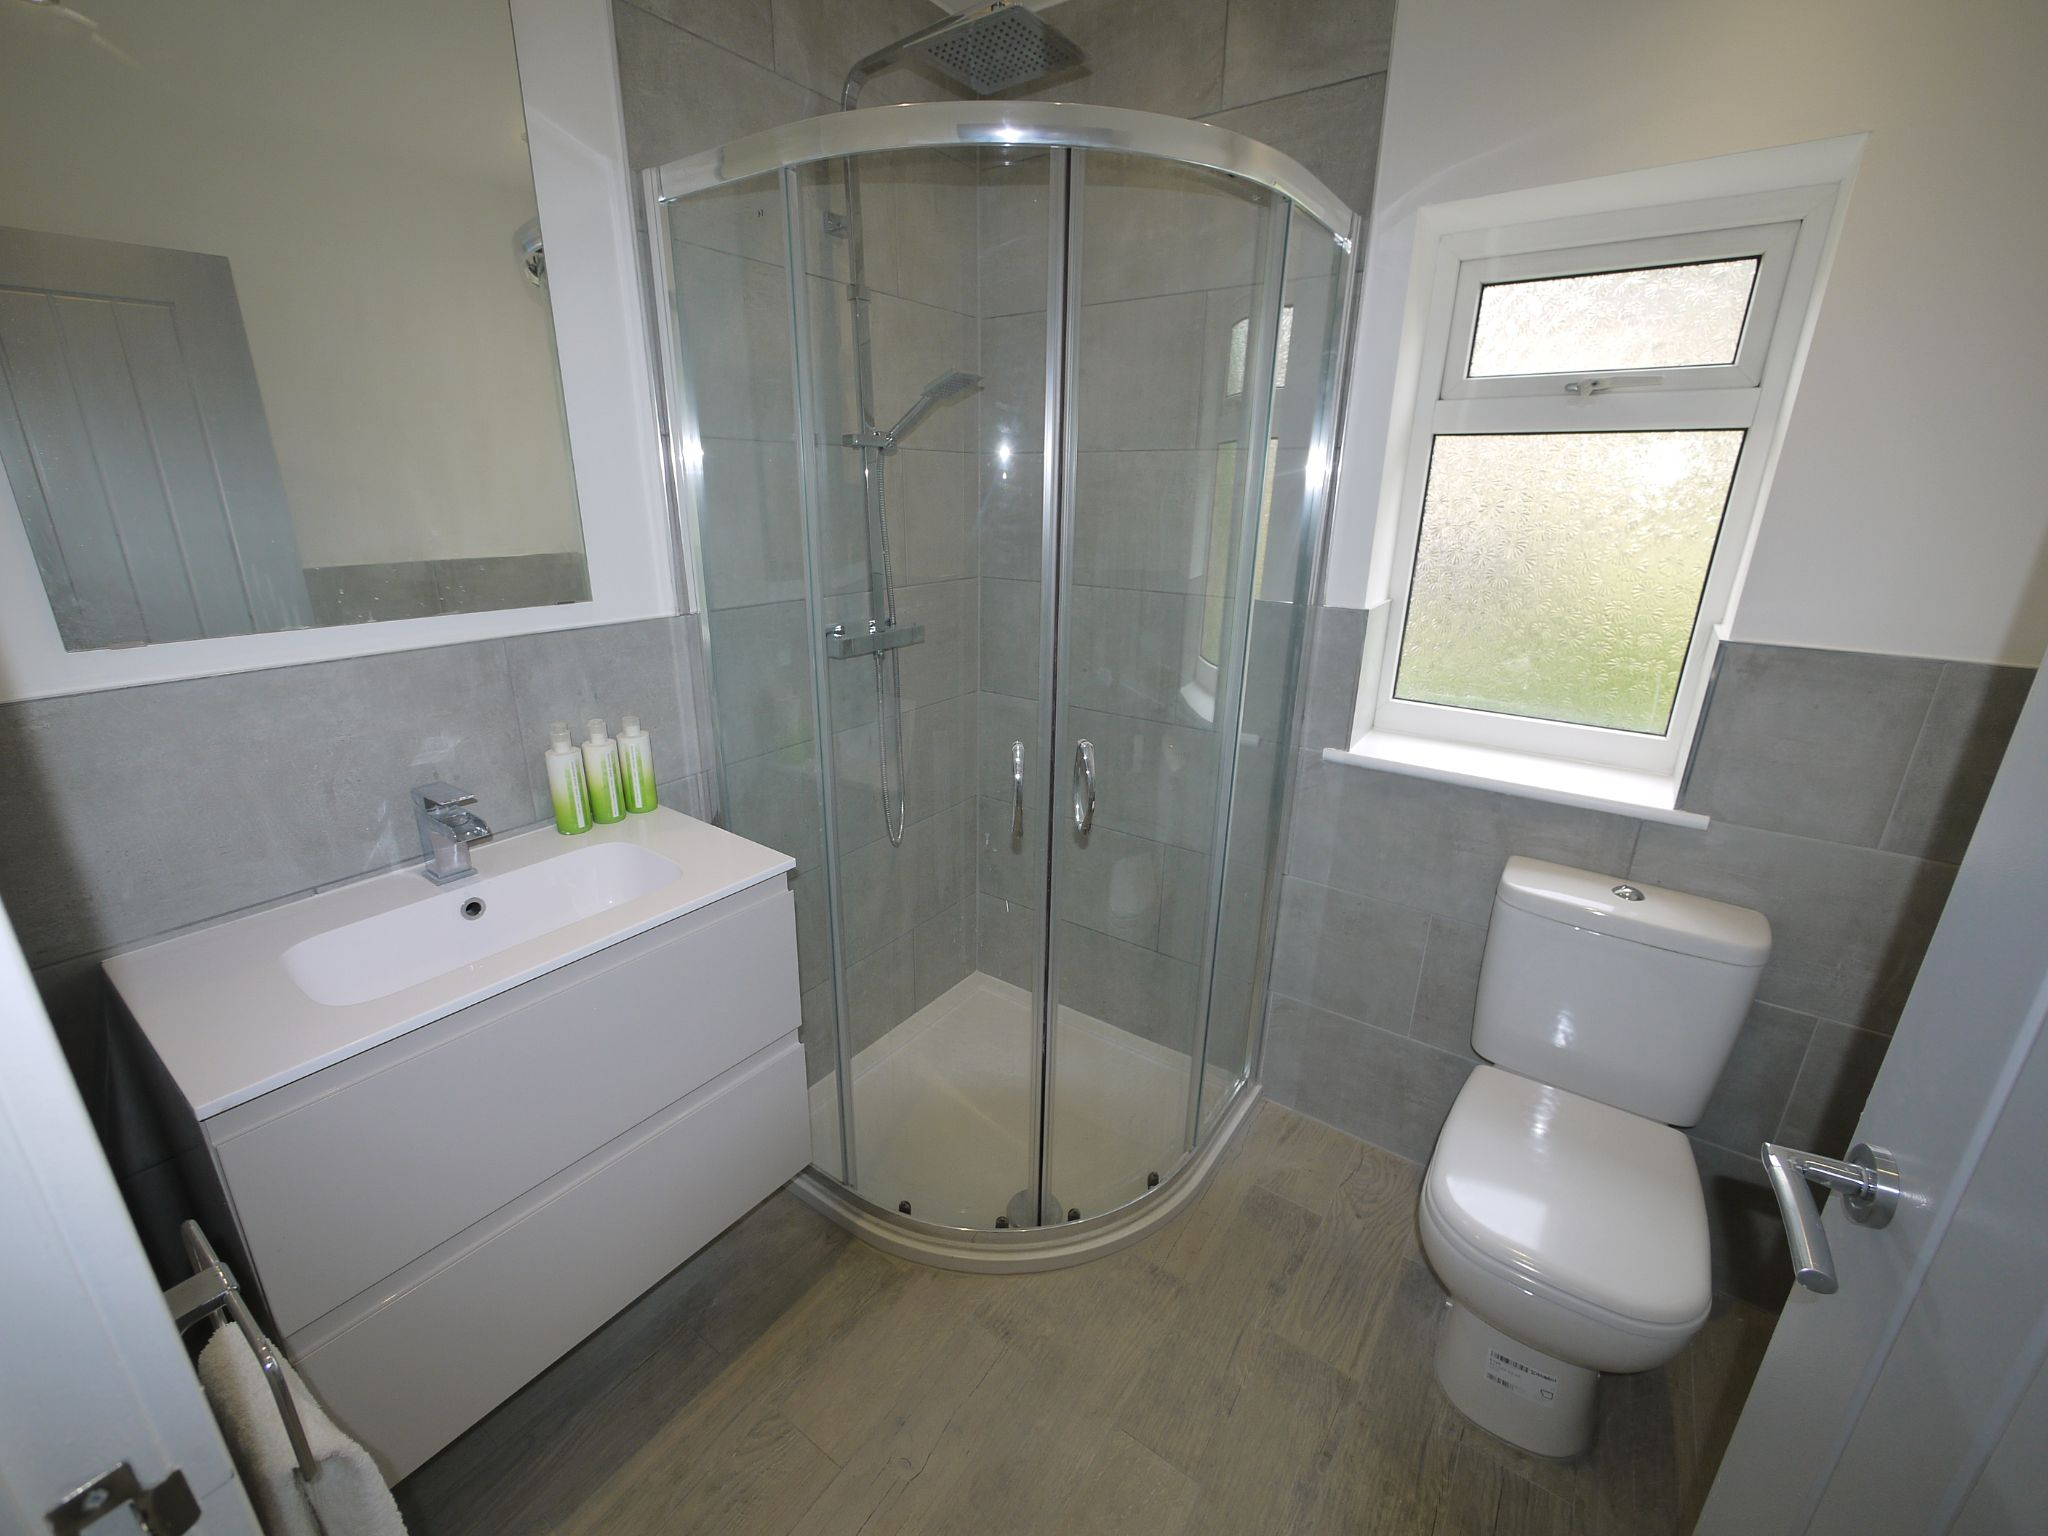 3 bedroom mid terraced house For Sale in Brighouse - Shower Room.